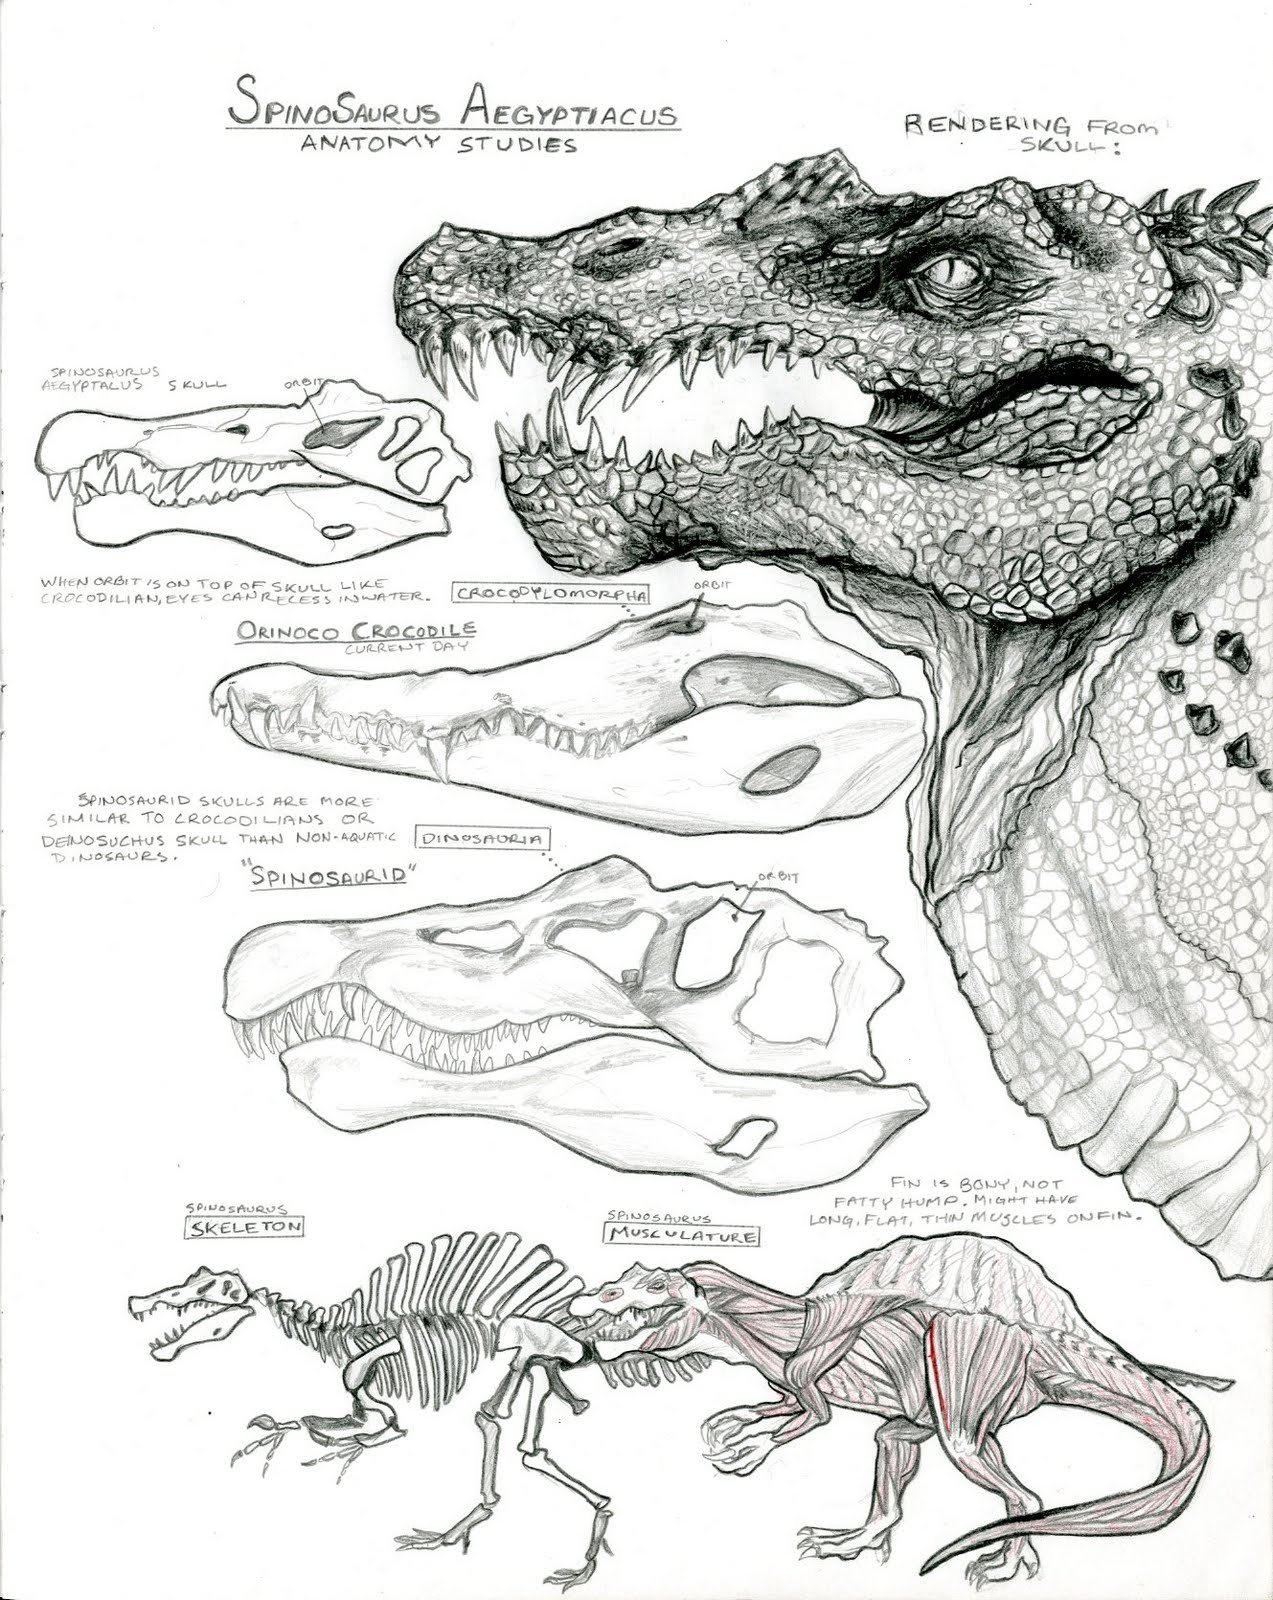 The Art of Cody Raiza: Anatomy Studies and Dinosaur Friends